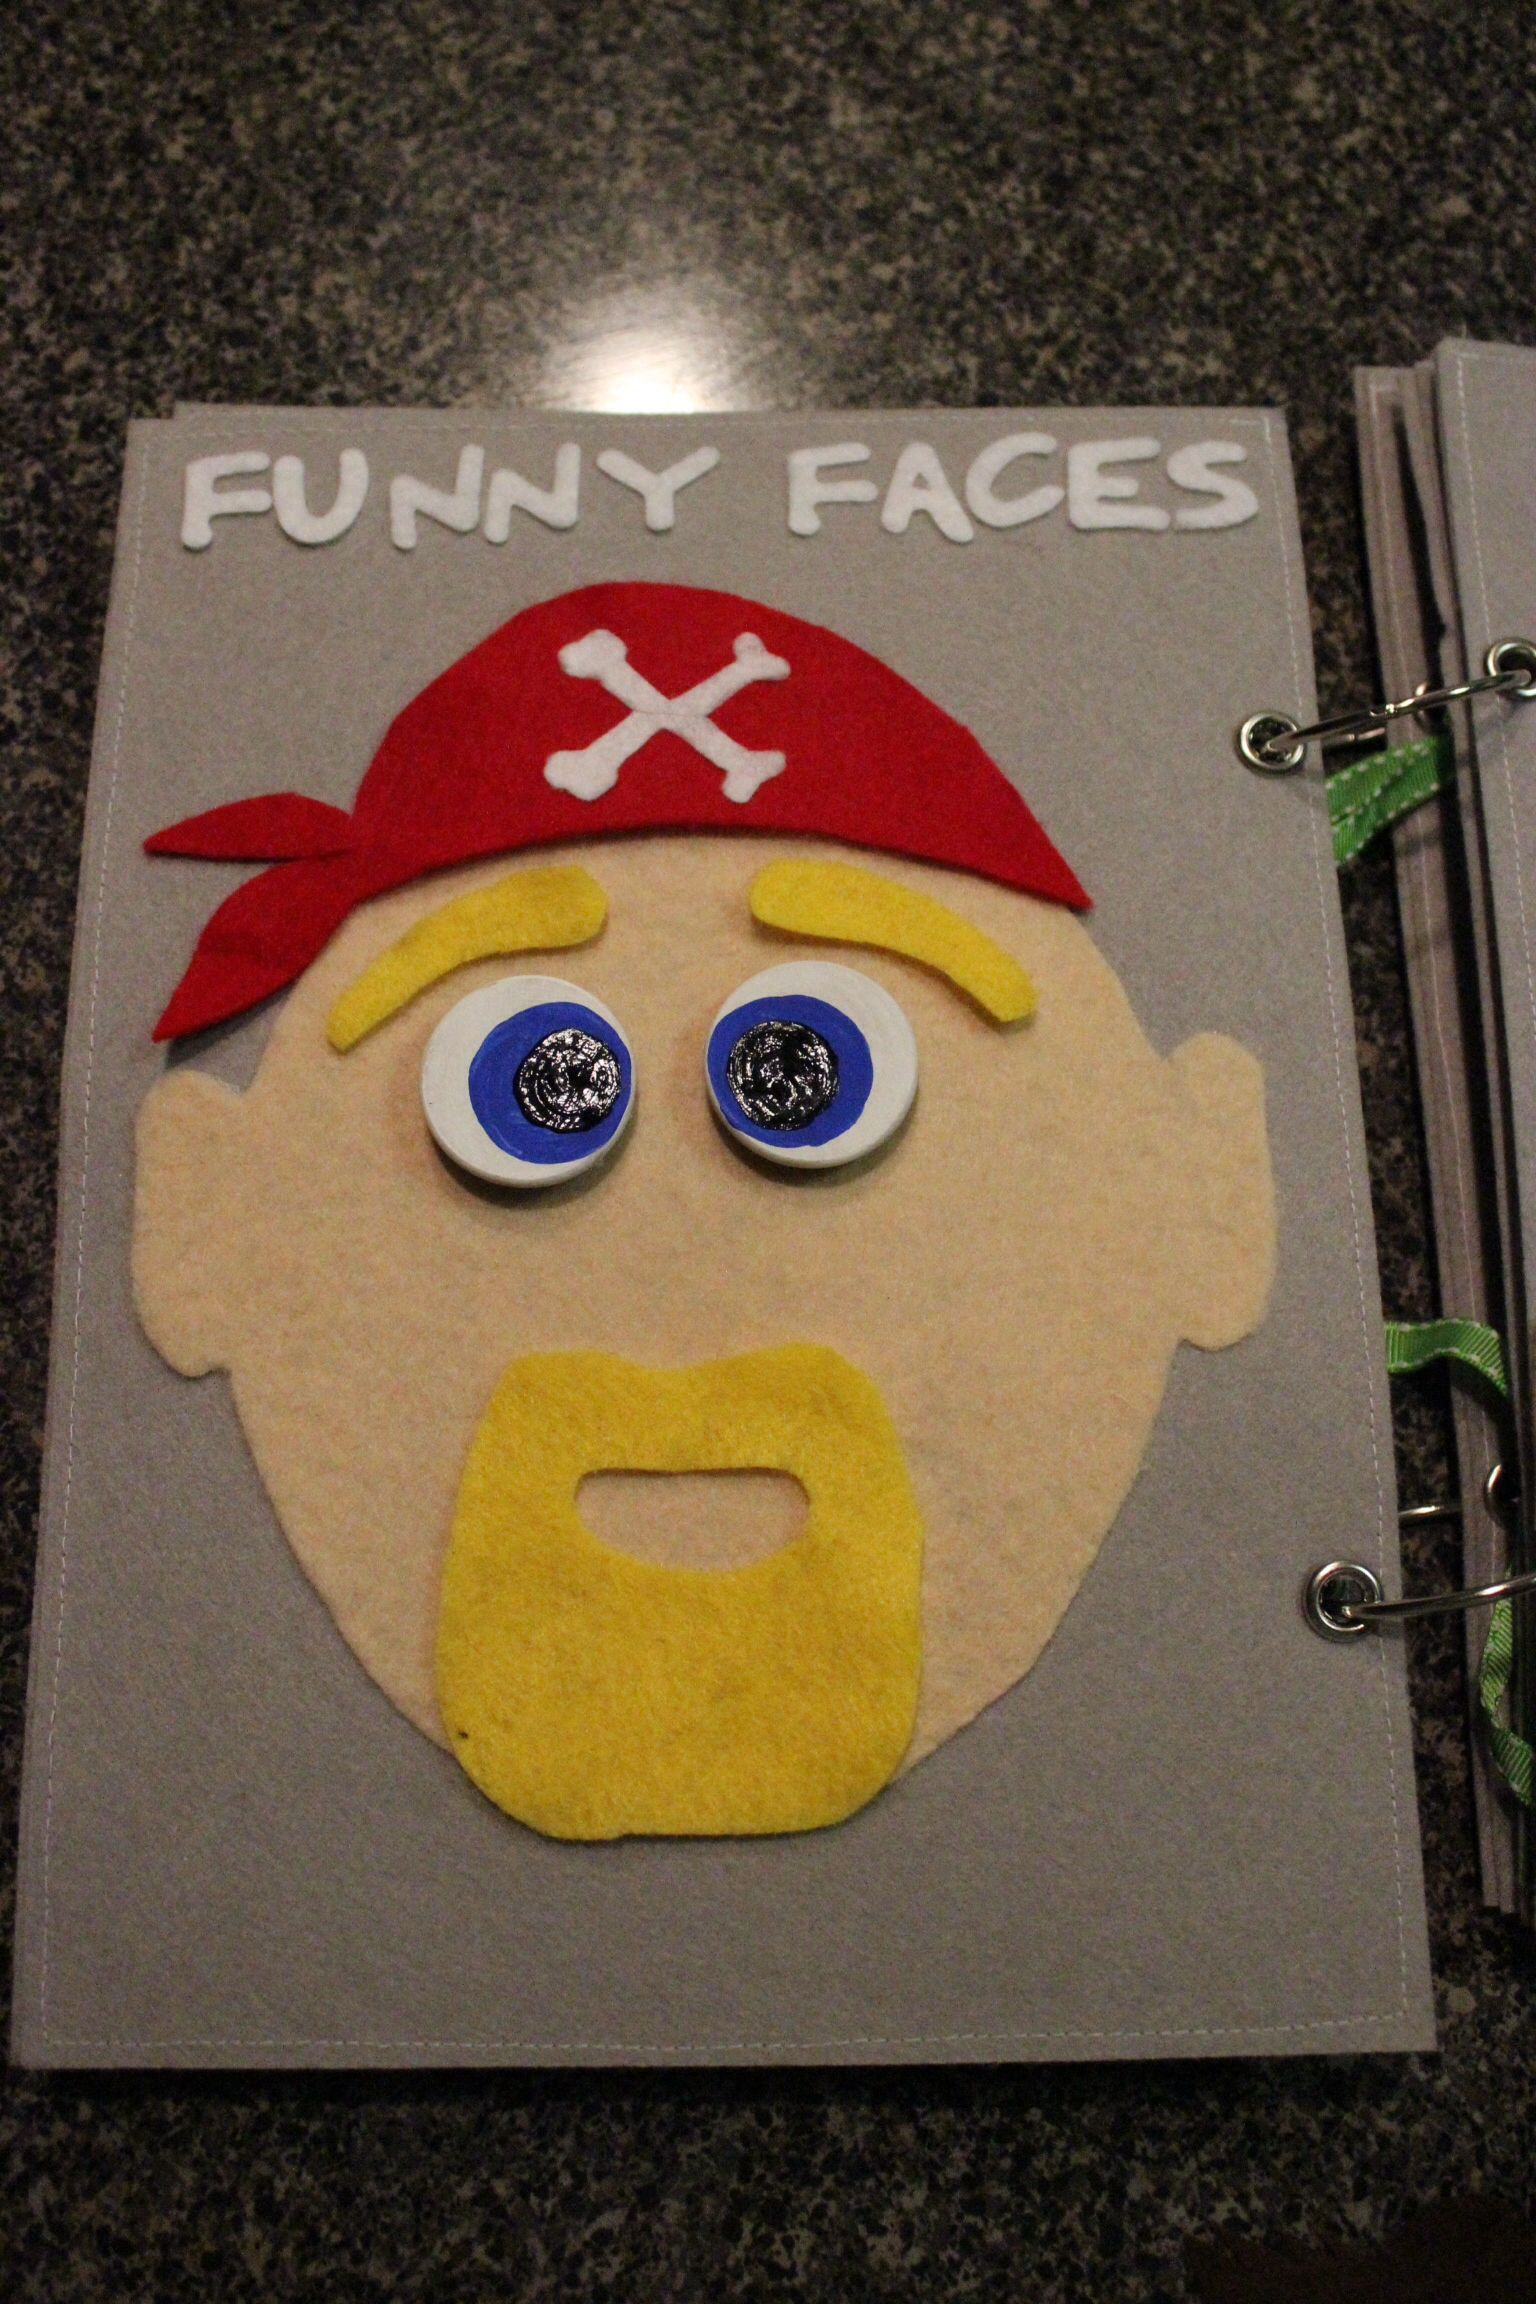 Silly faces 3 - quiet book